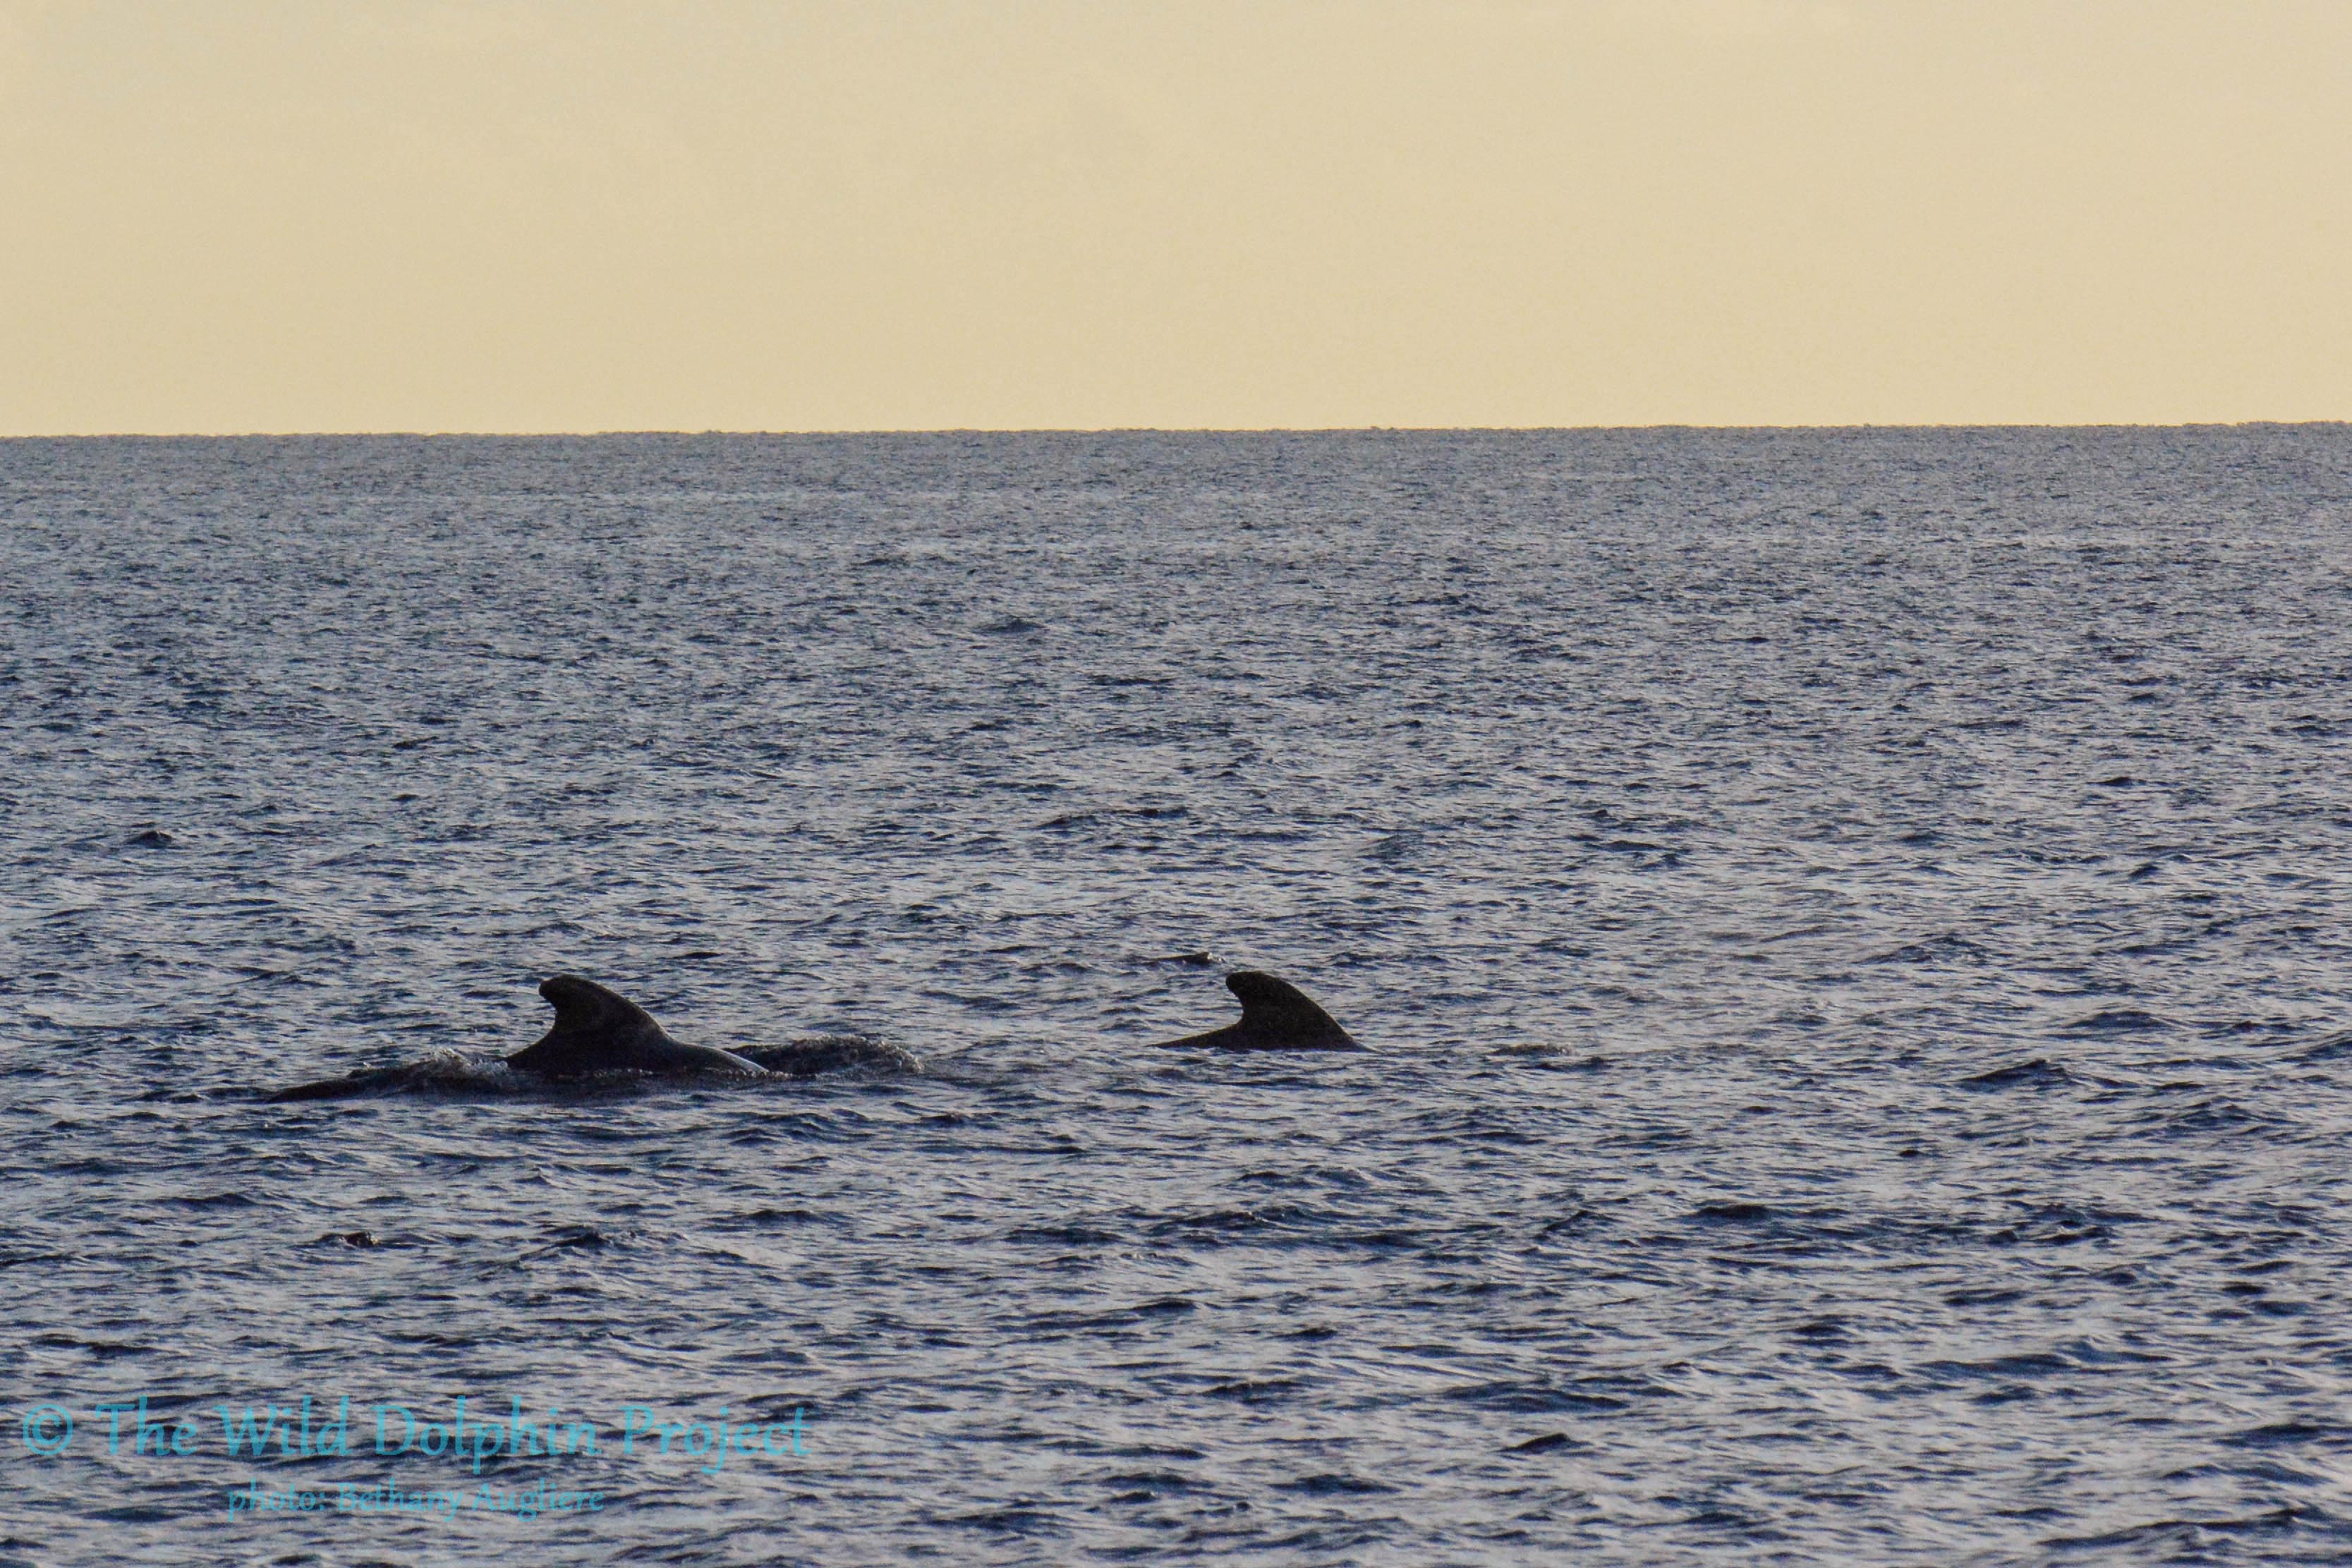 A large group of traveling Pilot Whales, including a mother and a calf, show up at sunset in the Gulf Stream